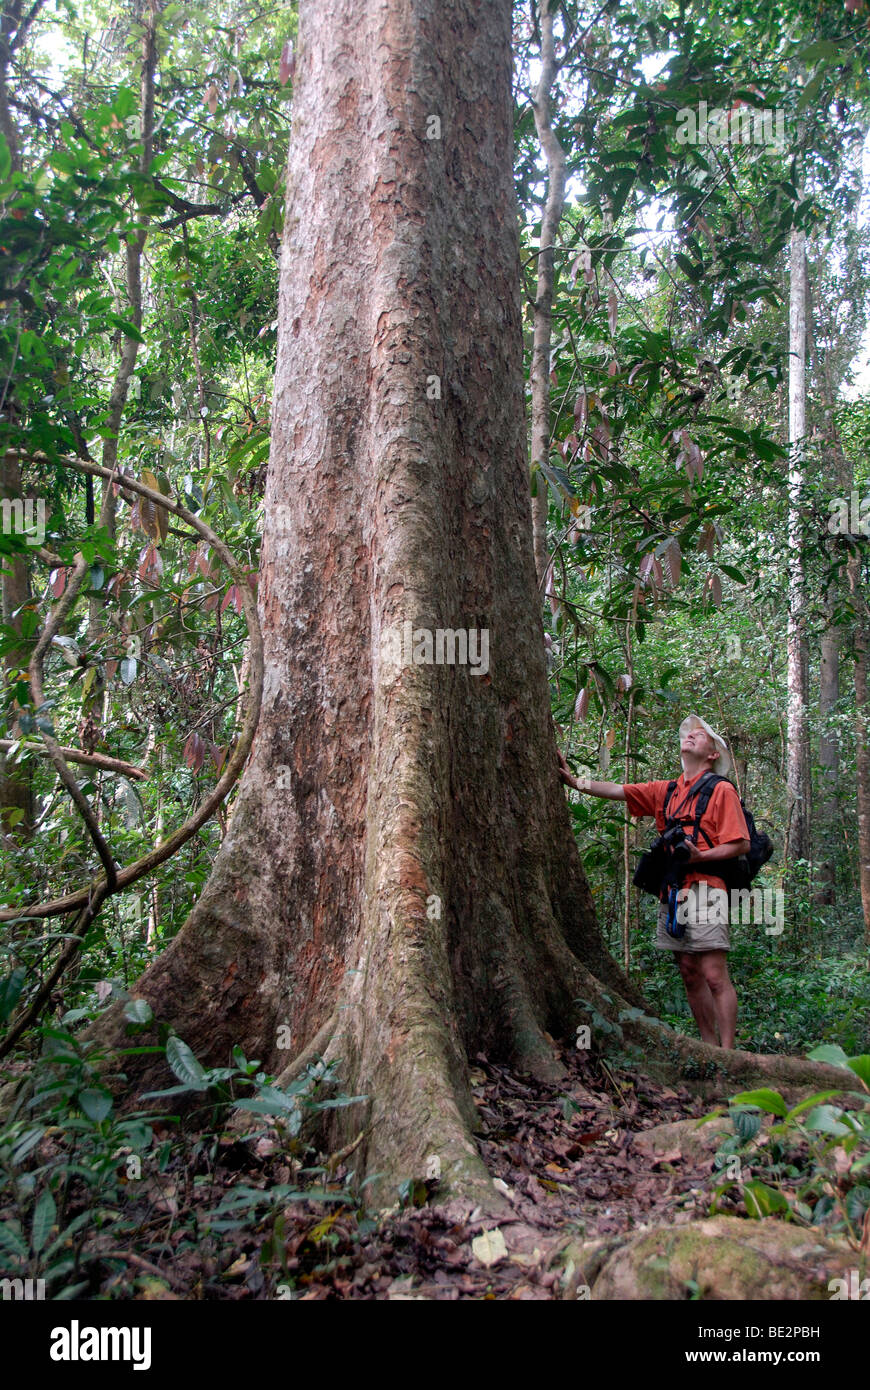 Giant tree, man standing in front of the tree in the jungle, mighty trunk and roots, Nam Lan Conservation Area, - Stock Image